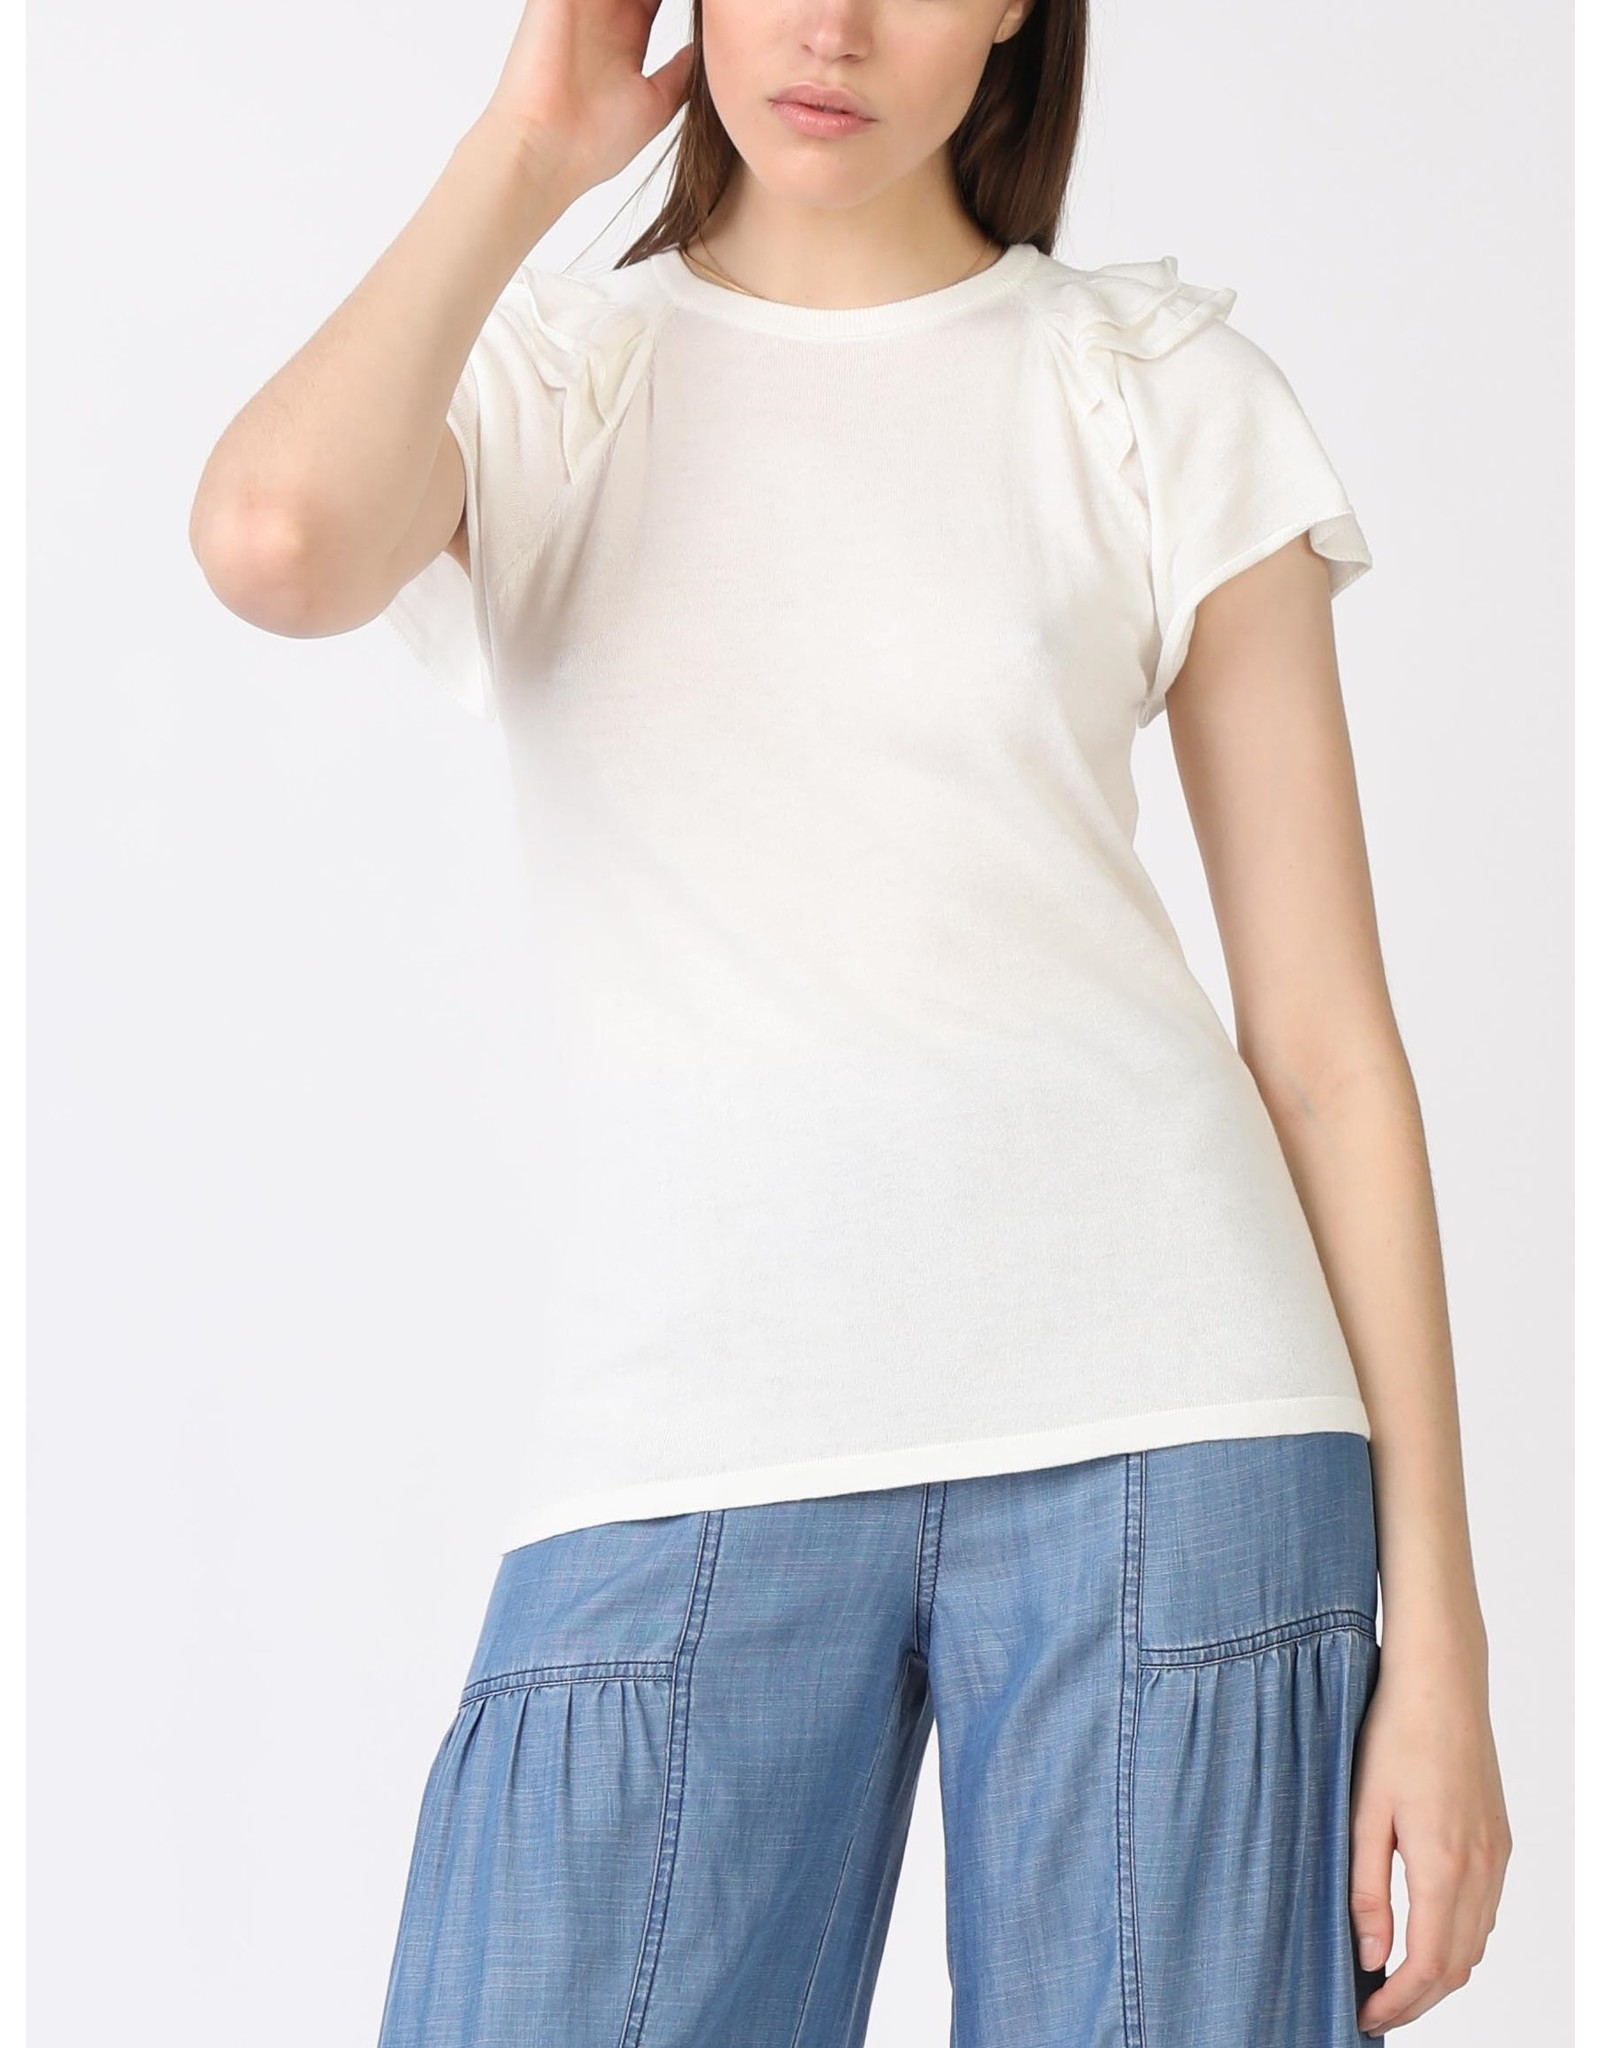 RUFFLED THIN SWEATER TEE